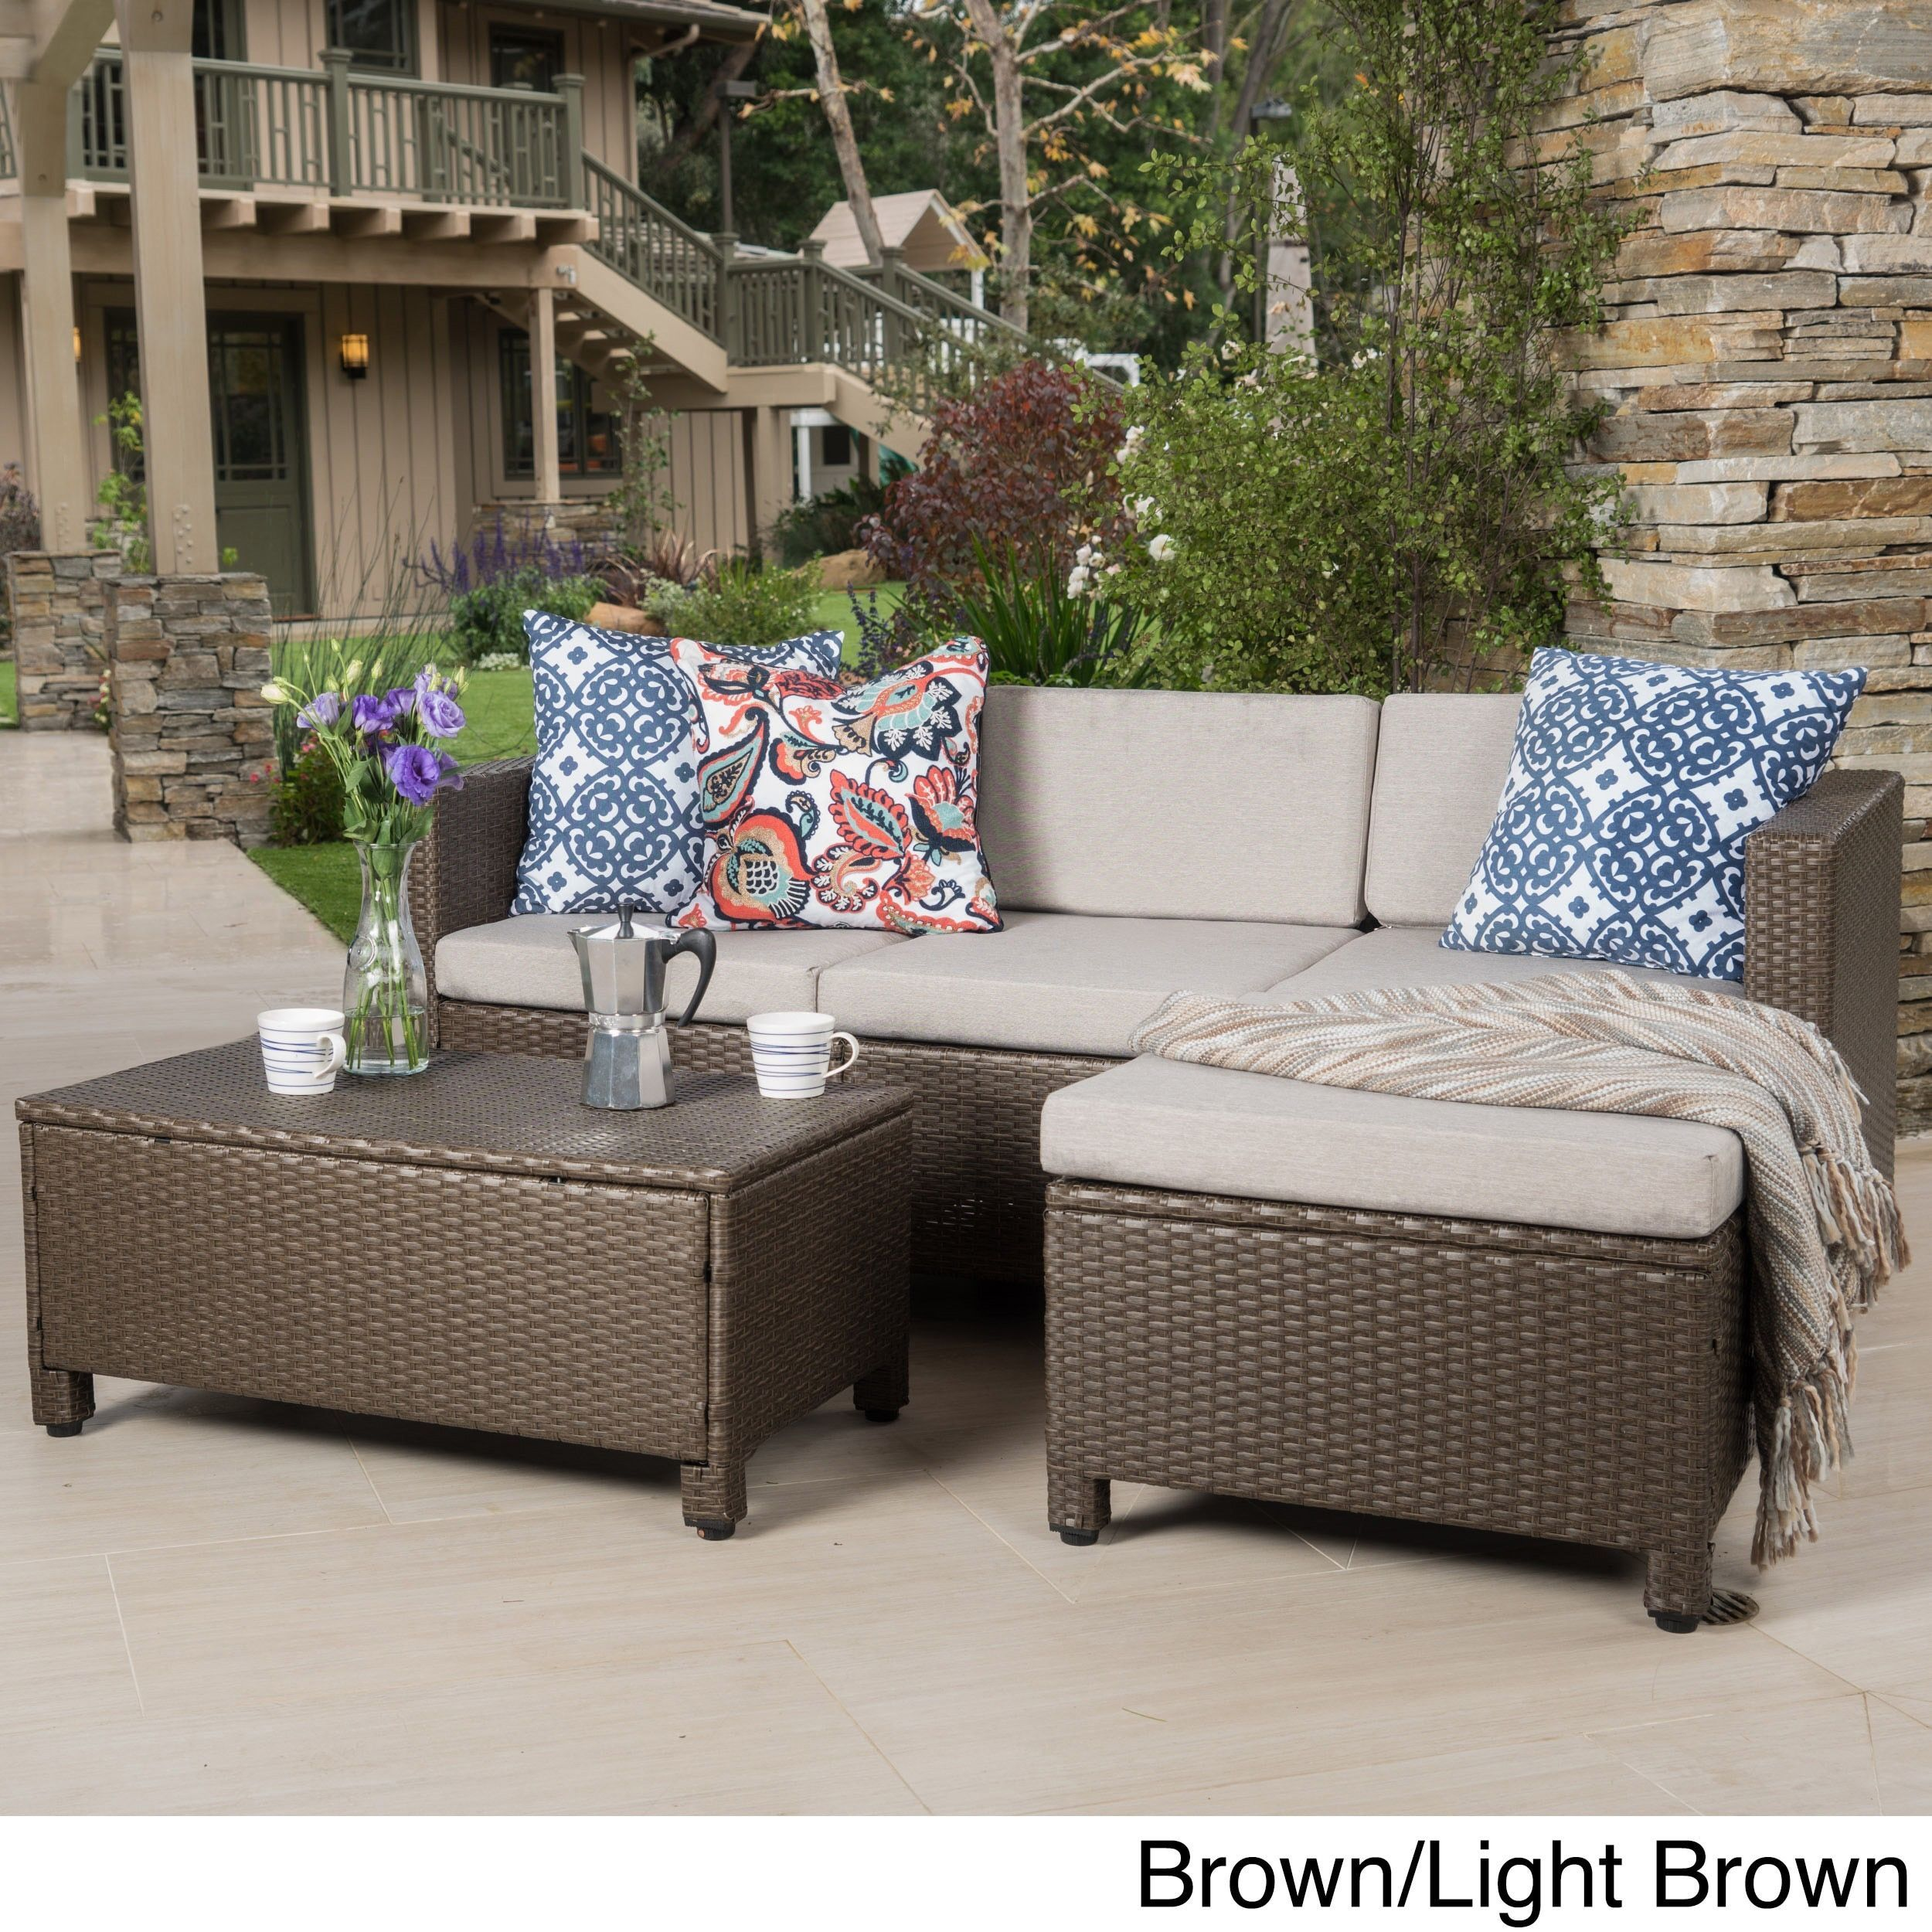 Outdoor Puerta 5 Piece Wicker L Shaped Sectional Sofa Set With Cushions By Christopher Knight Home Porch Furniture Furniture Patio Furniture Sets